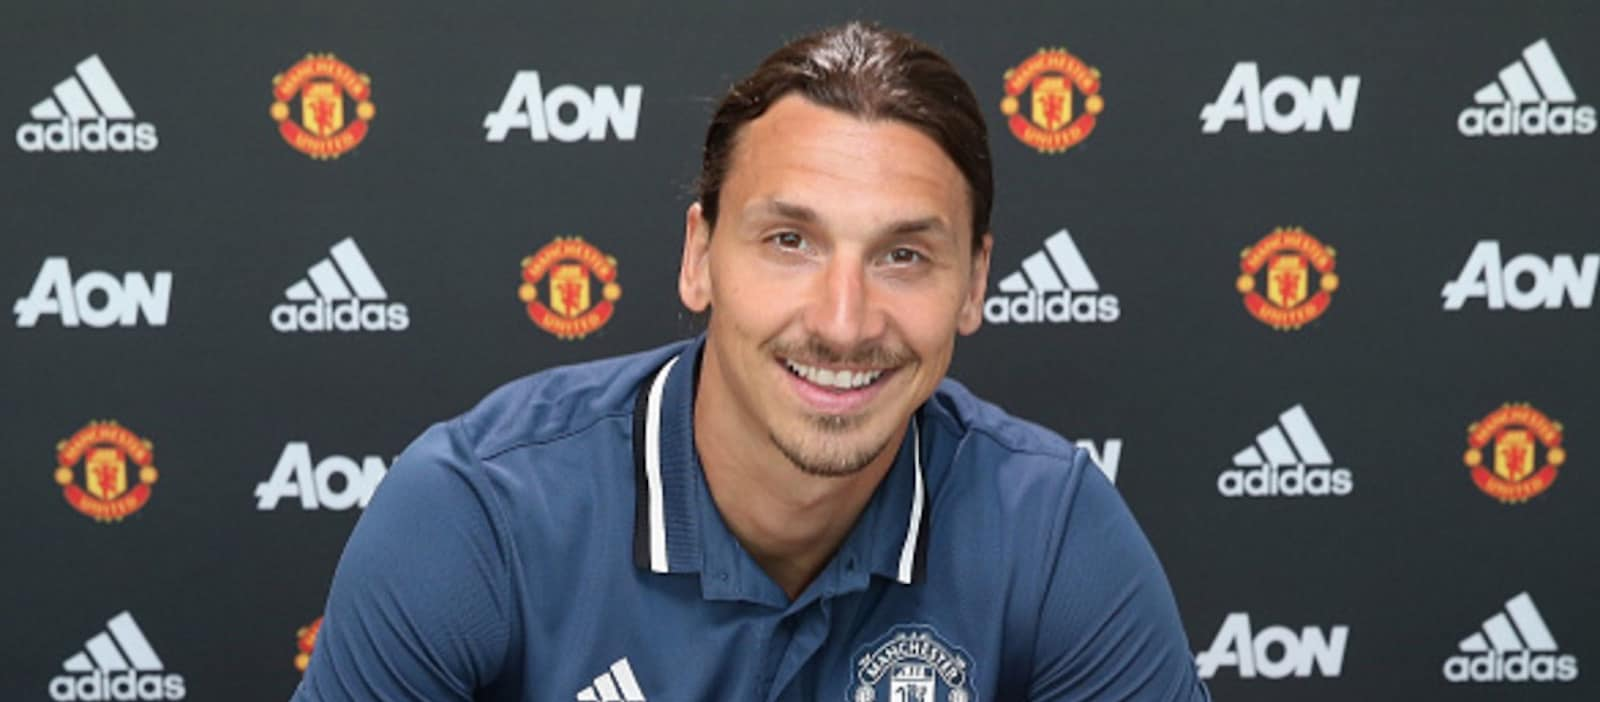 Manchester United vs Galatasaray: Potential starting XI with Zlatan